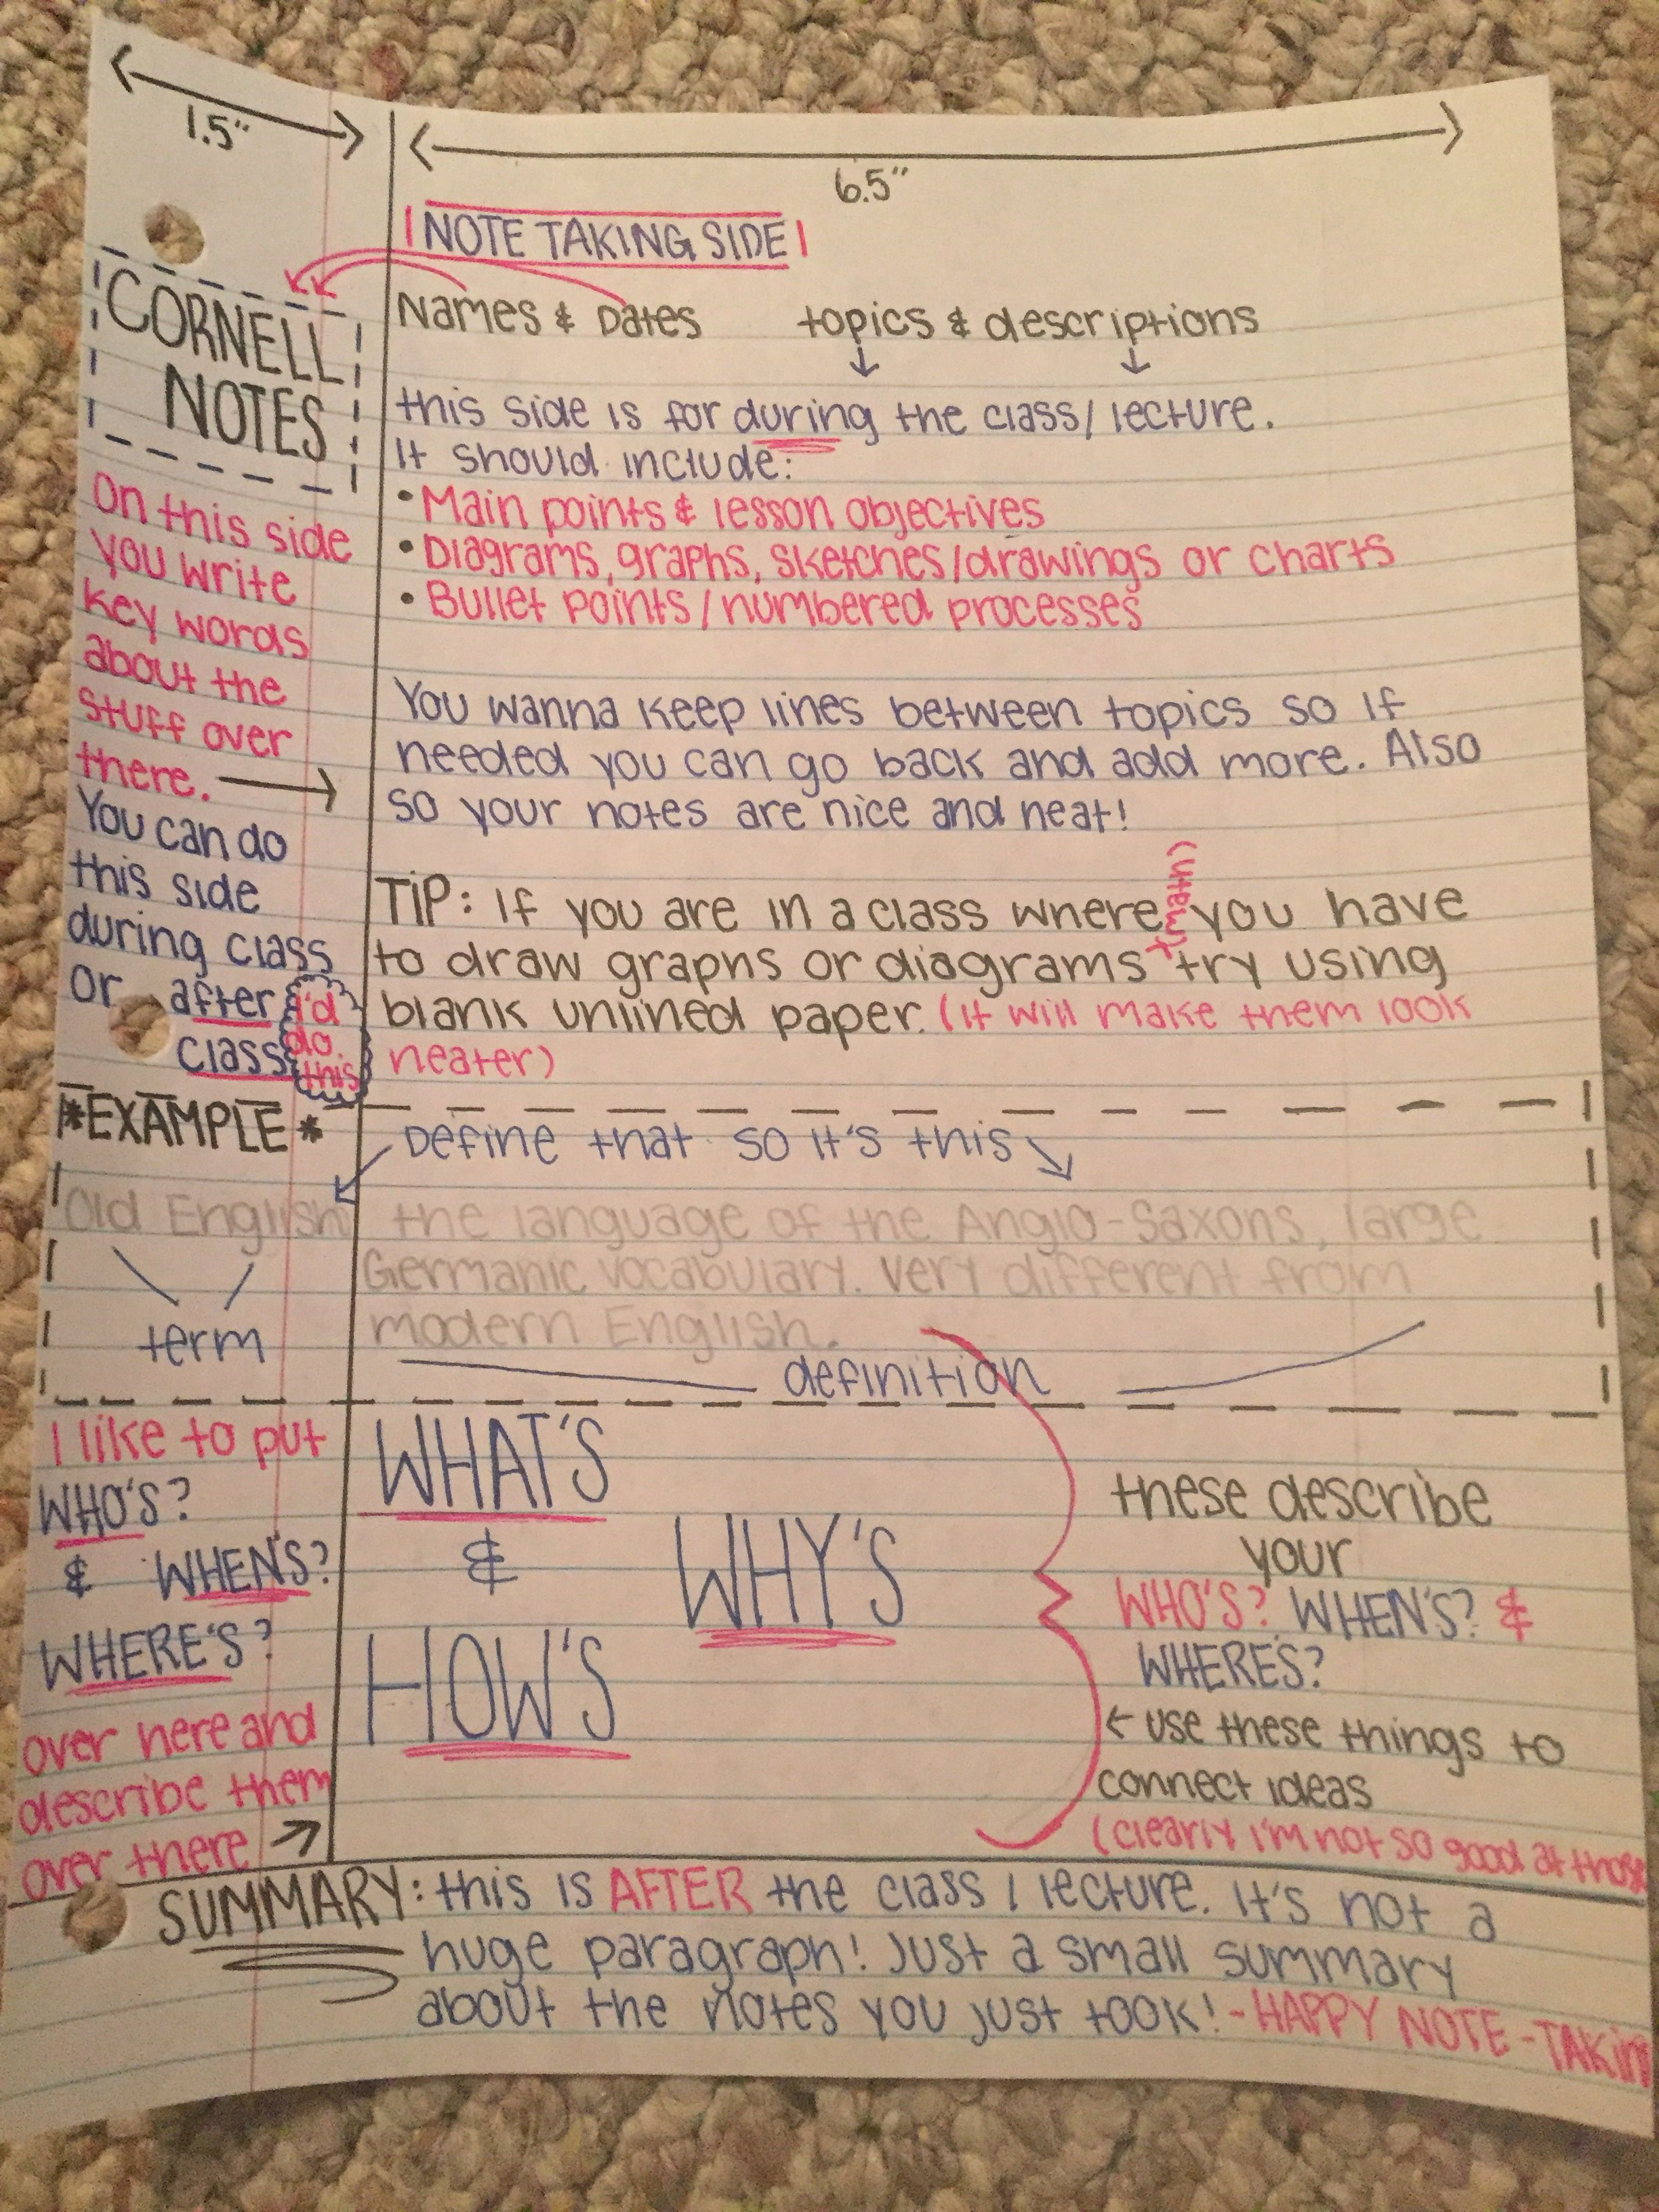 The Best Way To Organize Your Cornell Notes